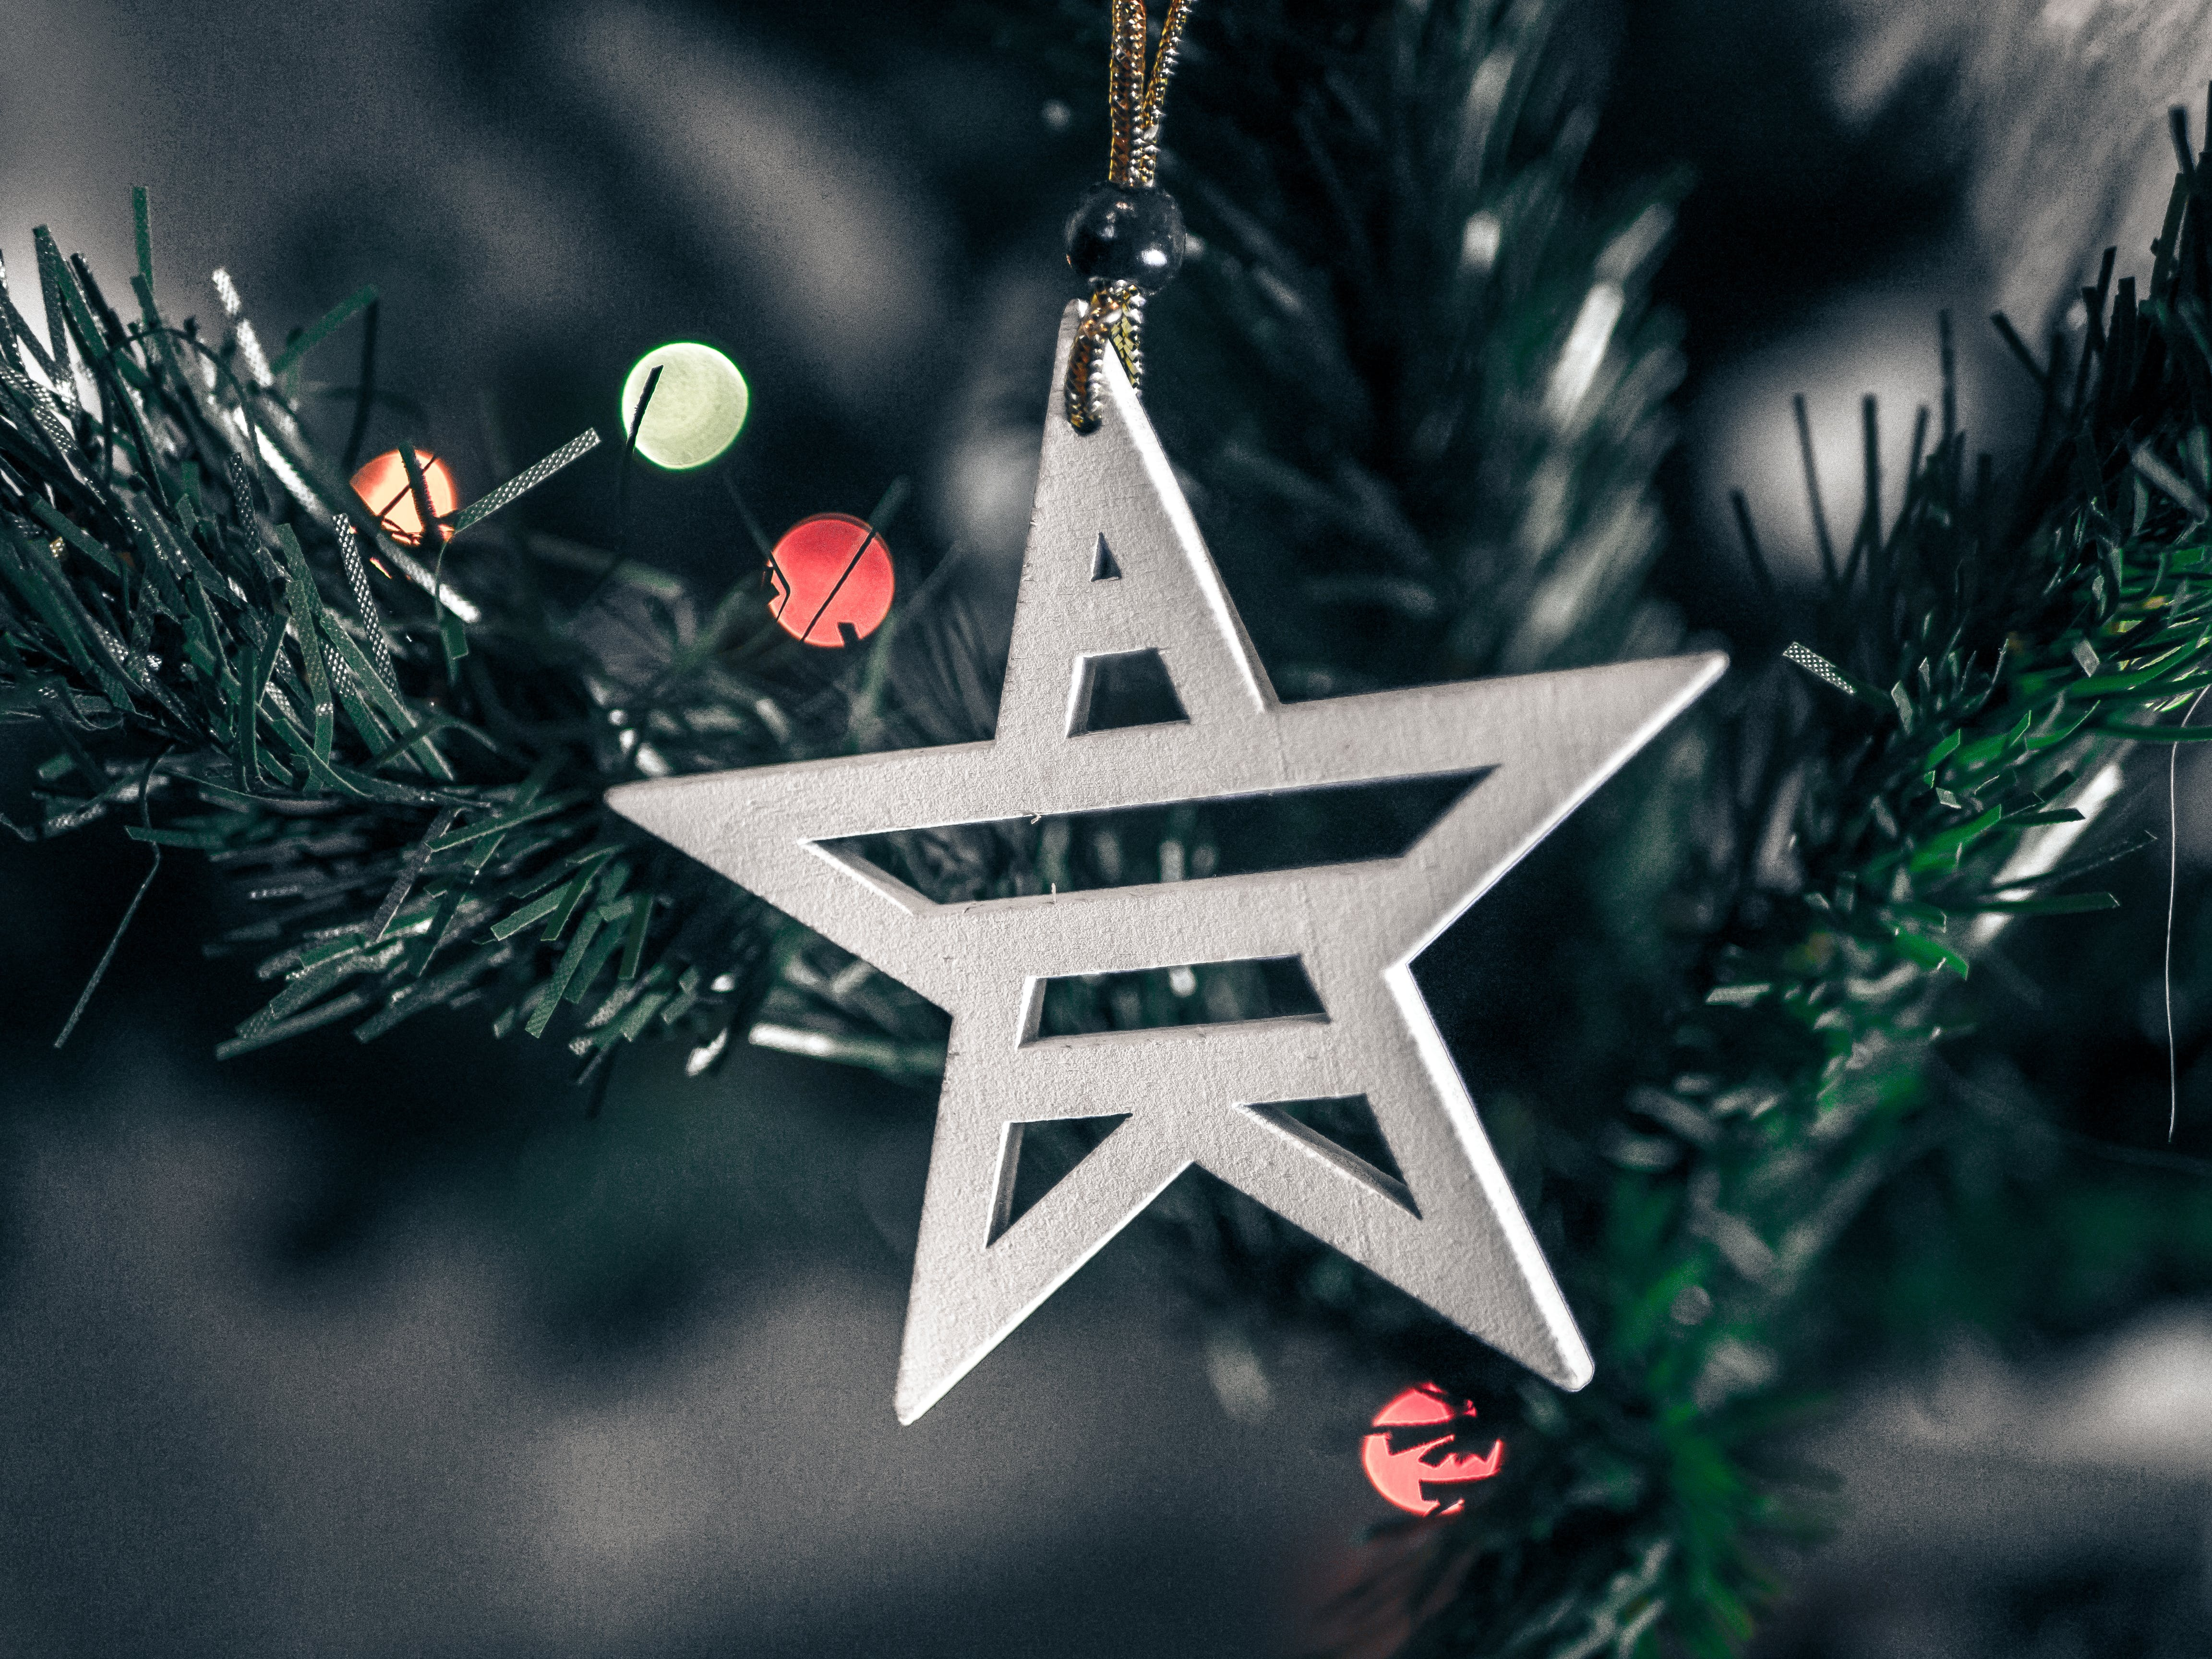 Macro Shift Photography of White Wooden Star Christmas Decor